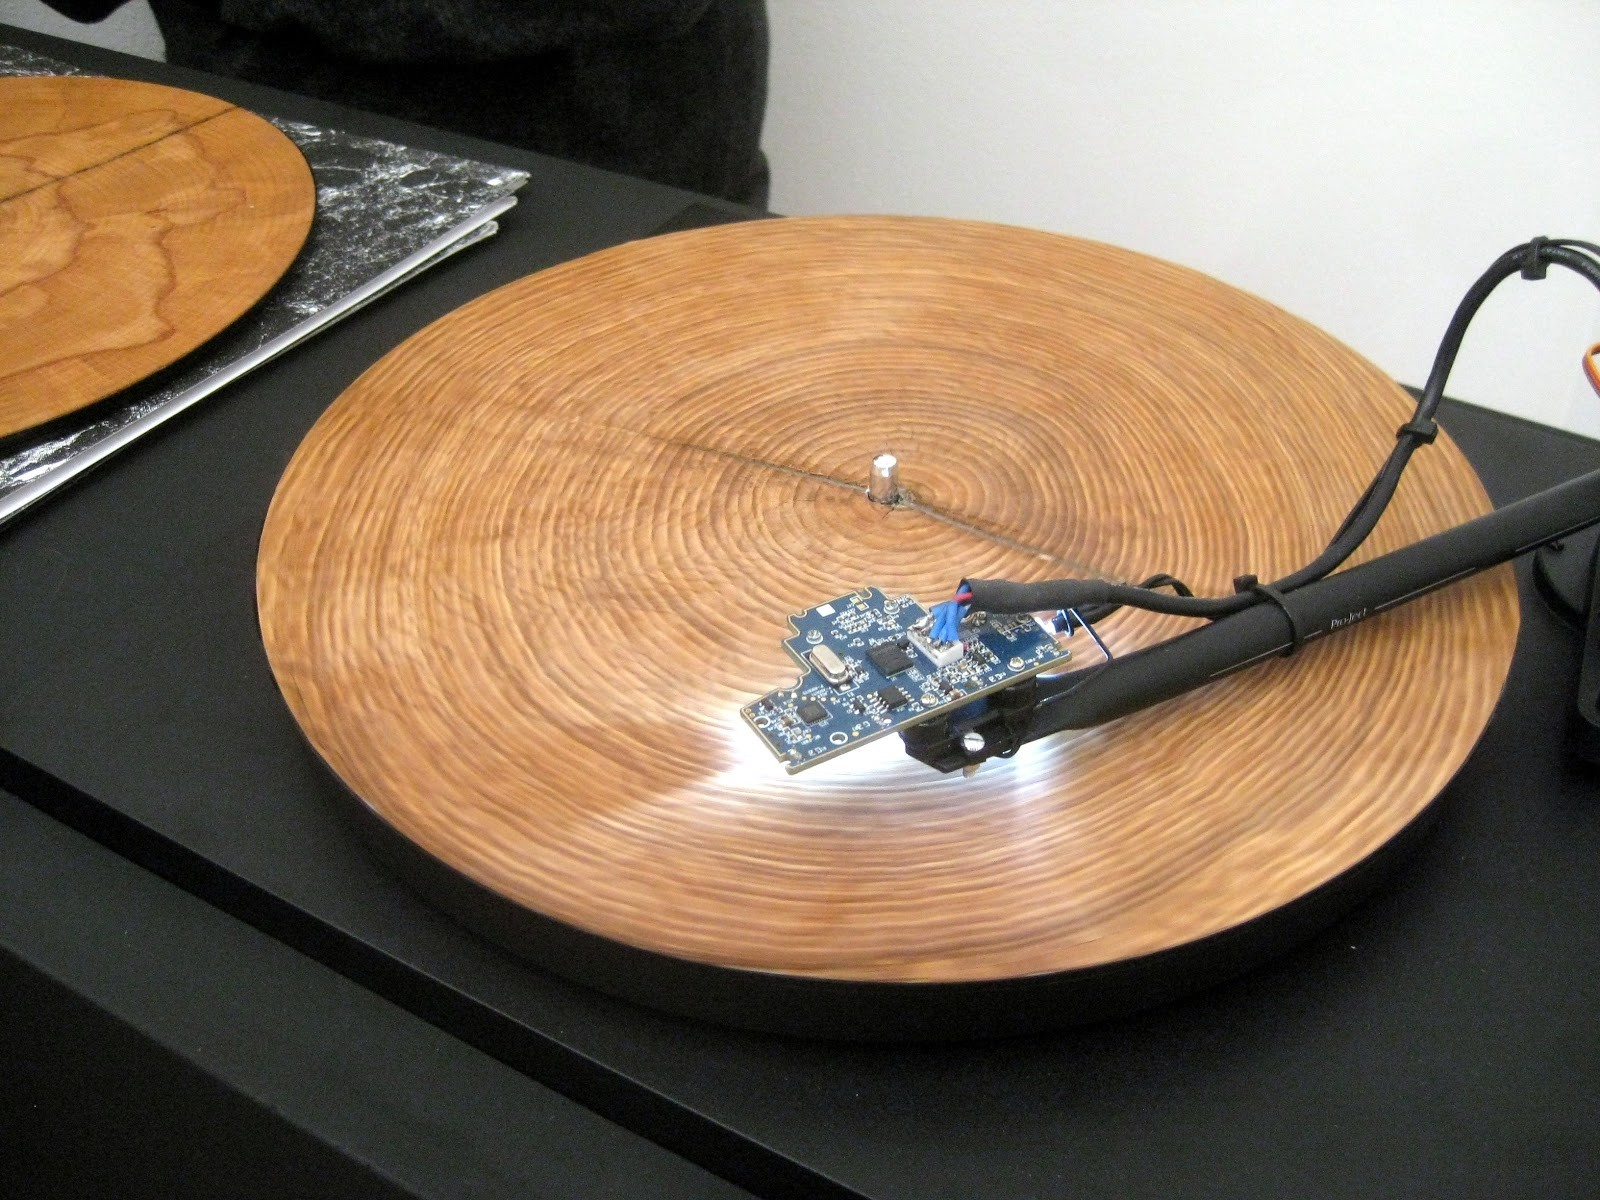 Slice of Tree Trunk Played on Turntable......